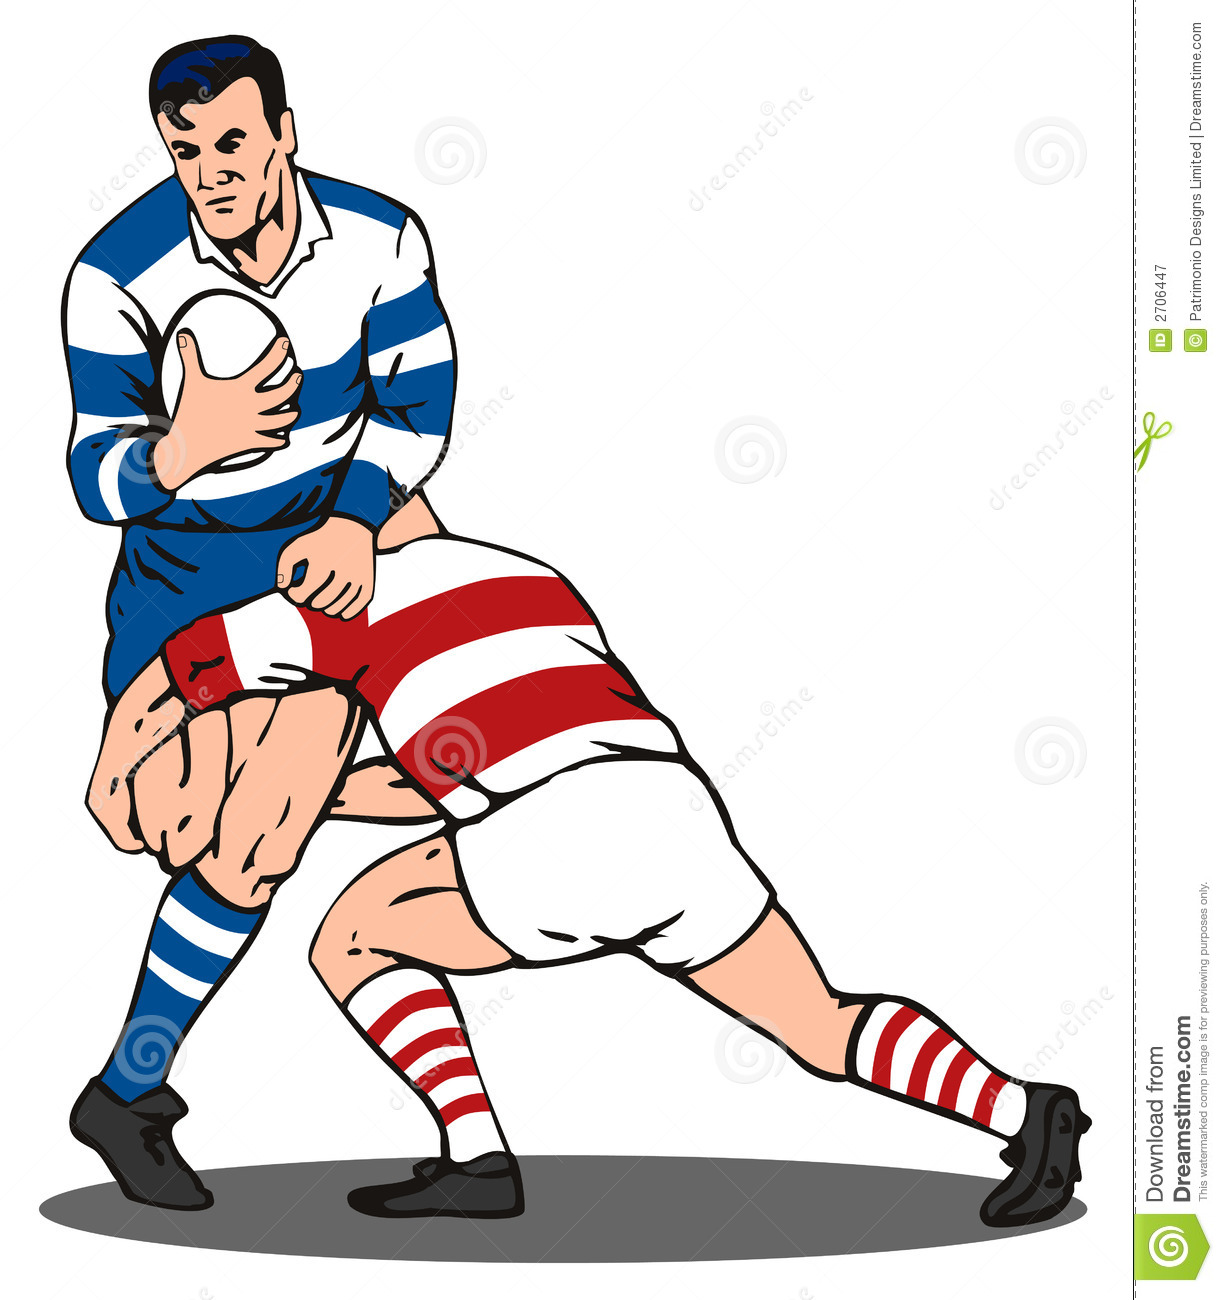 Rugby Player Tackling Royalty Free Stock Photography - Image: 2706447